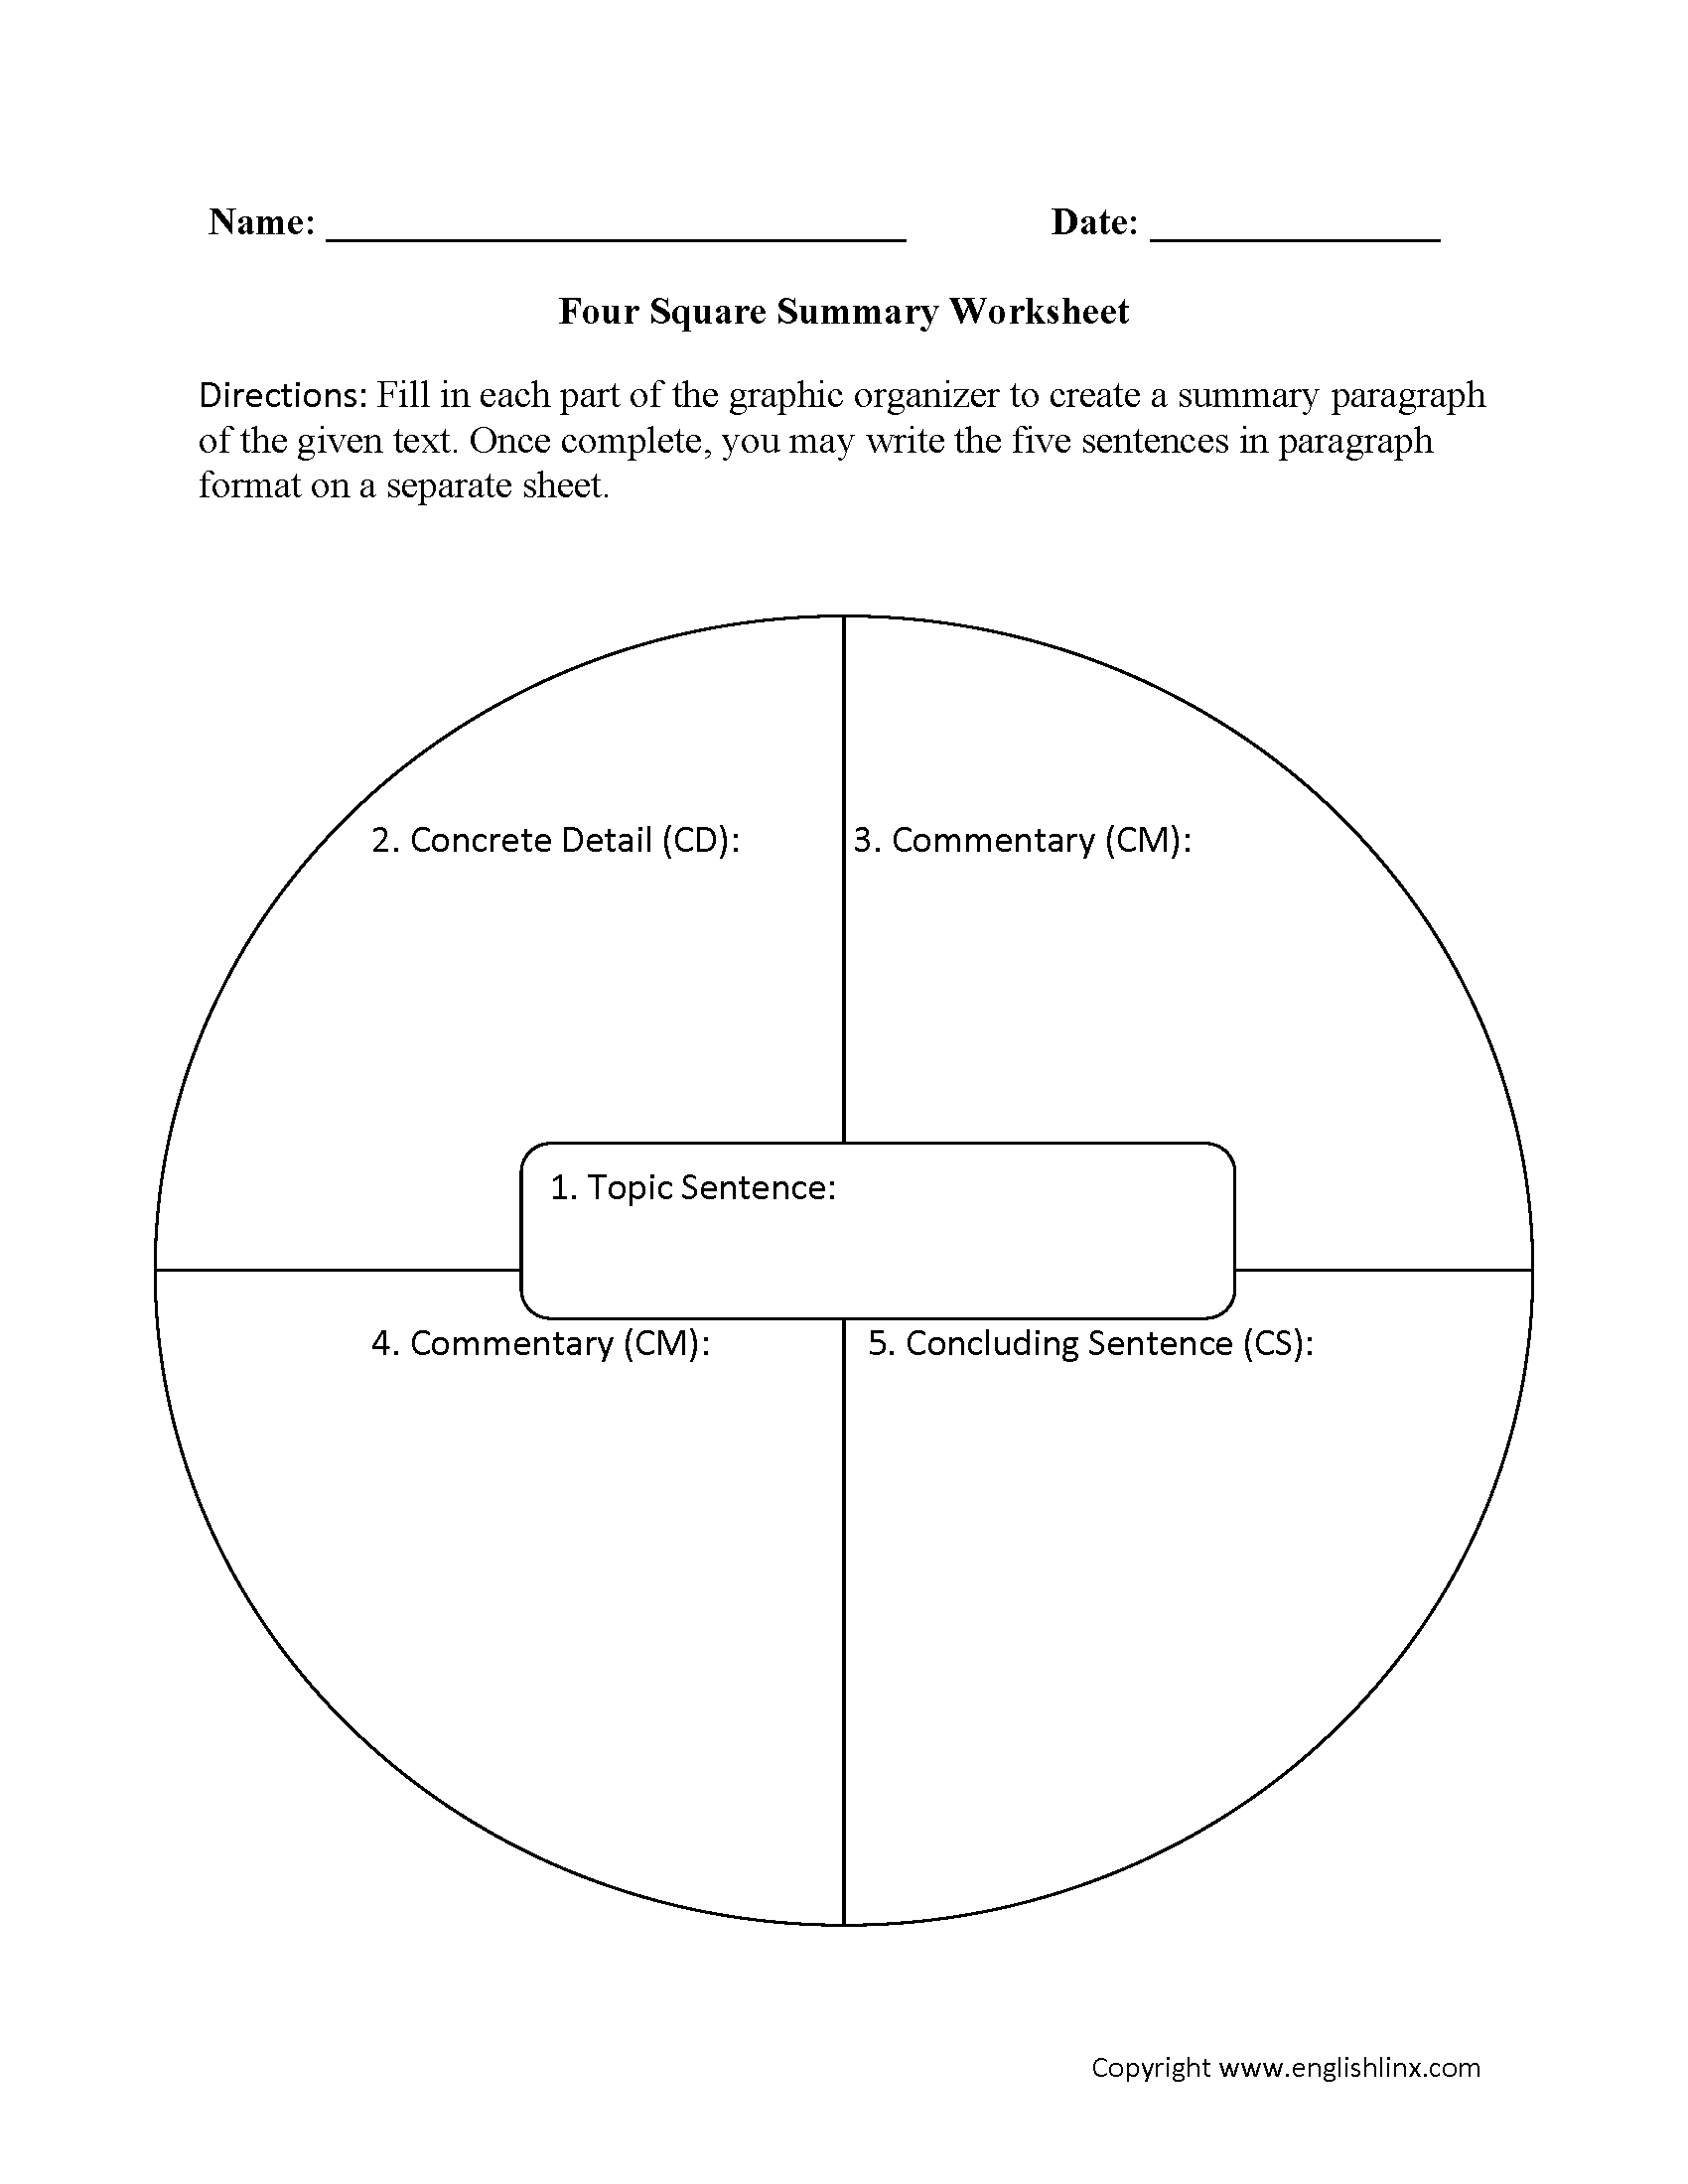 Four Square Summary Worksheet With Images